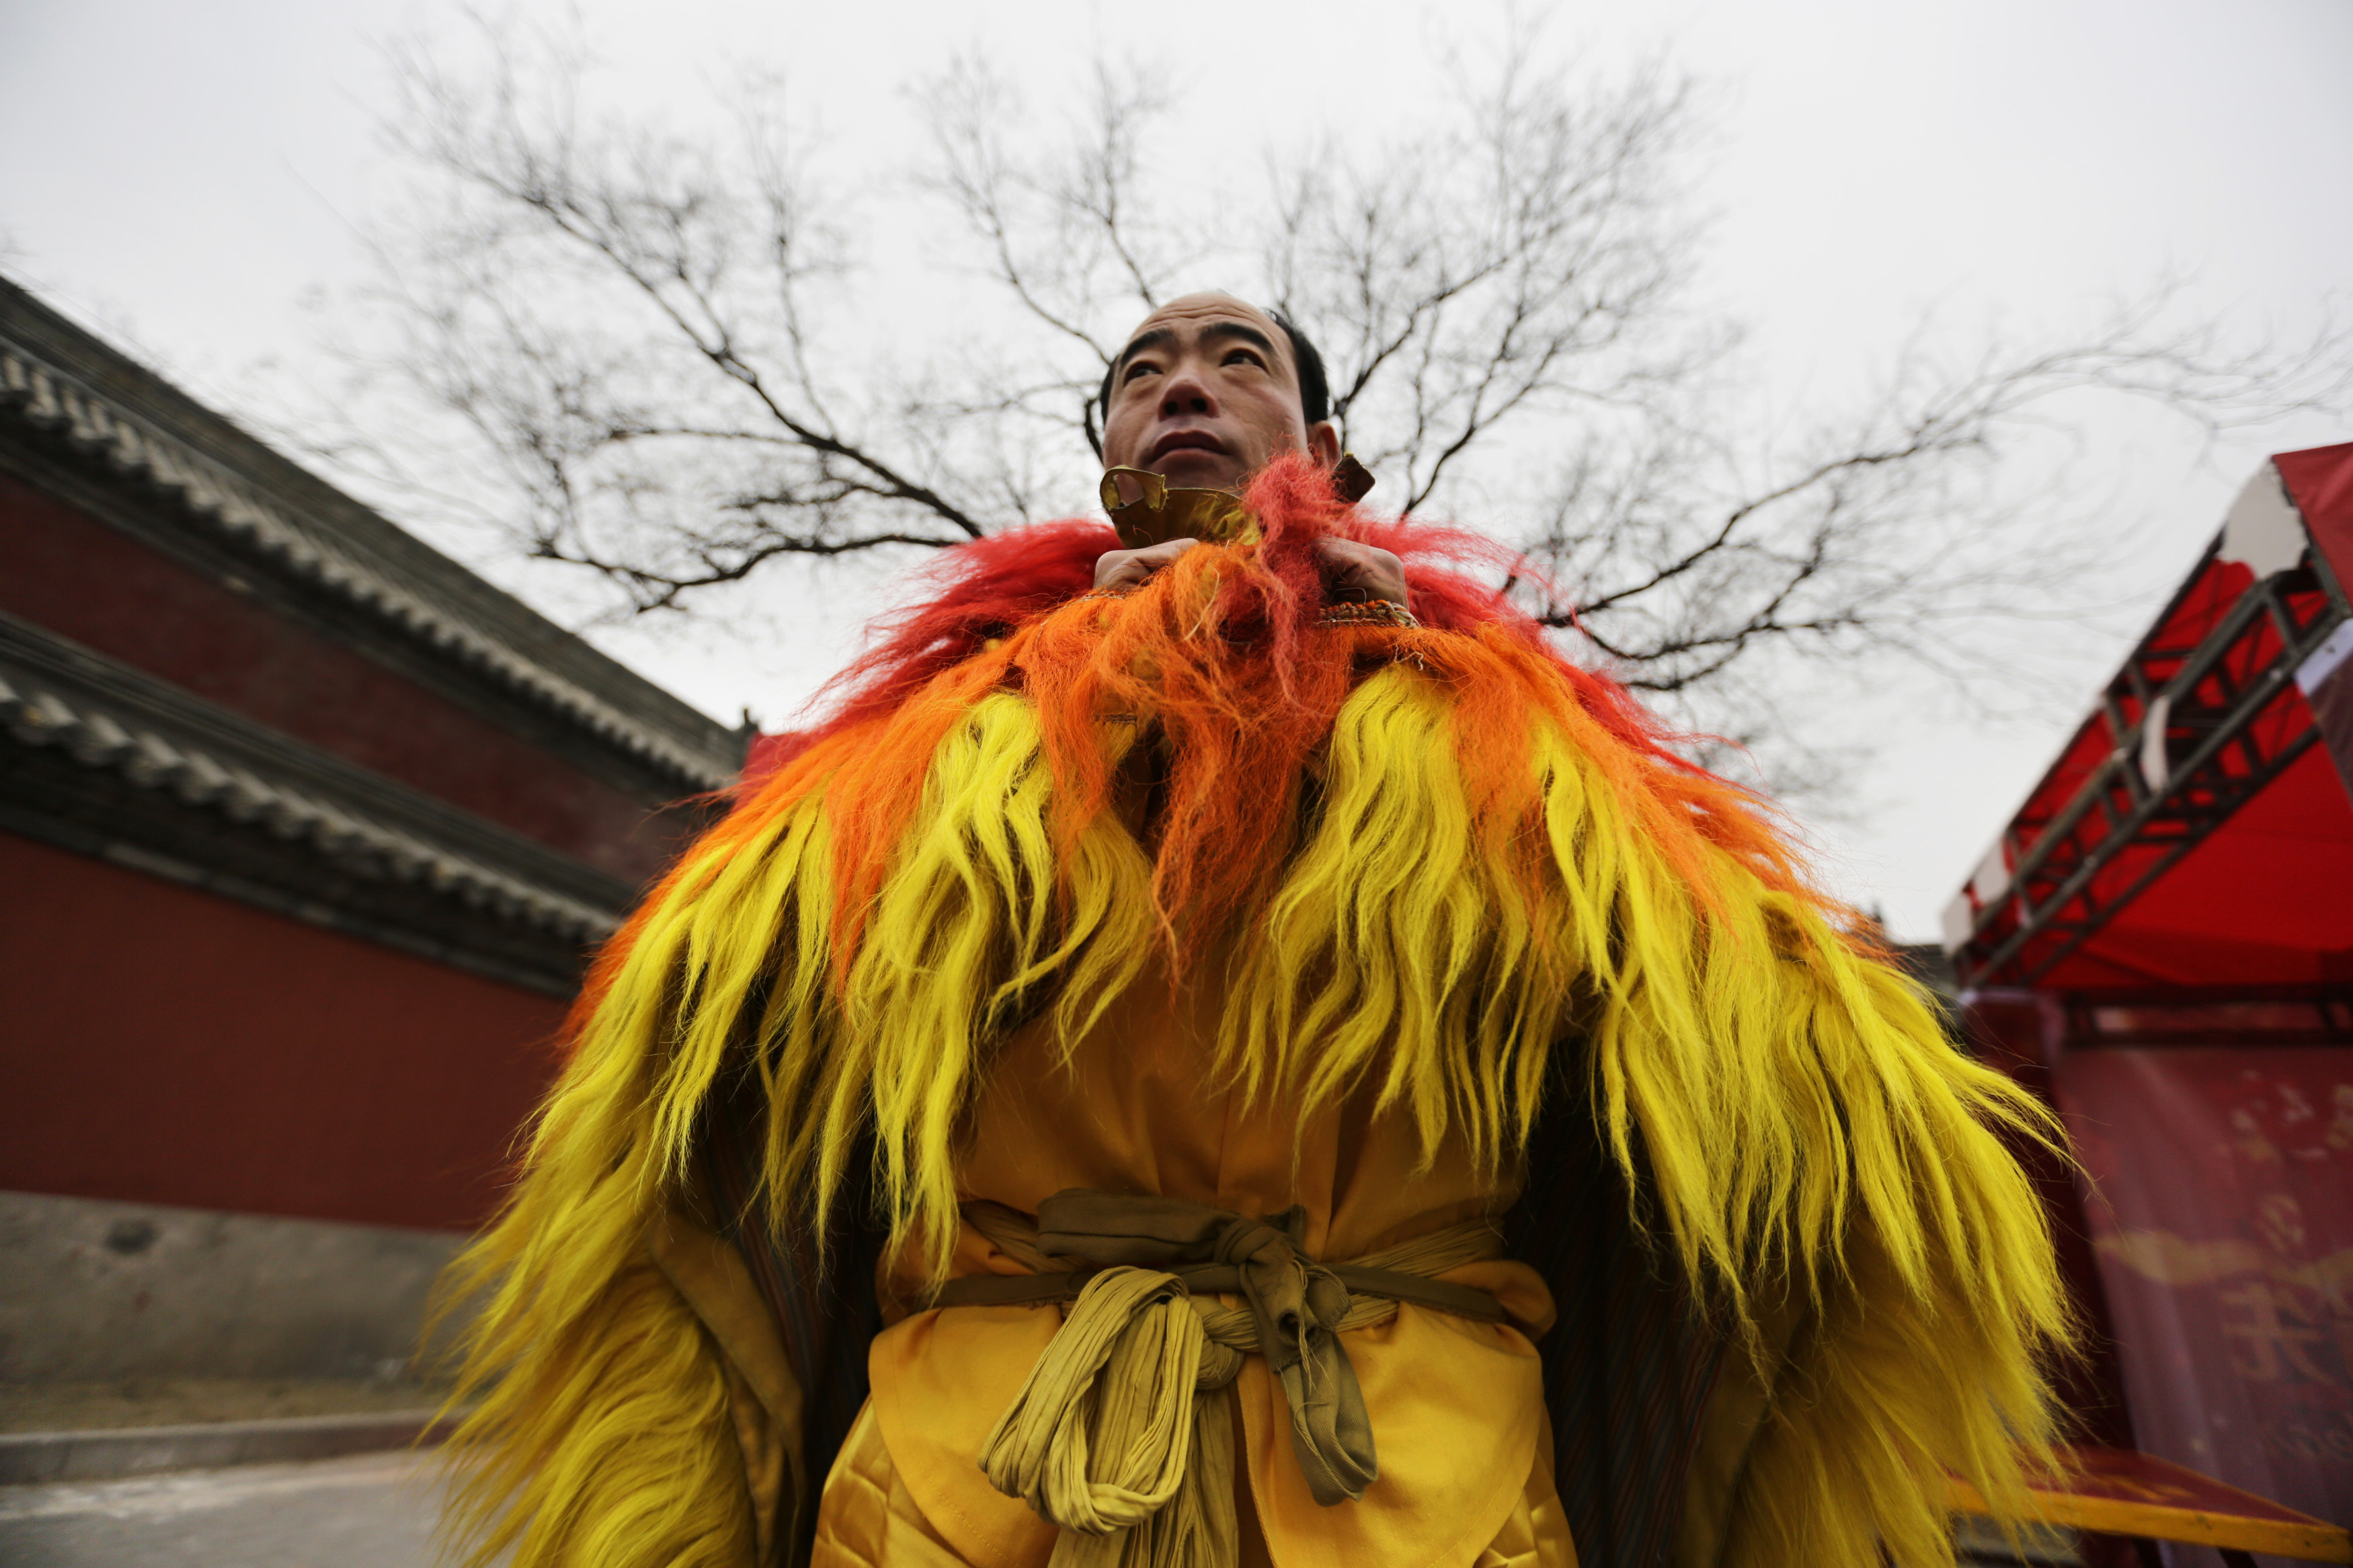 A folk artist waits to perform the lion dance to celebrate the traditional Chinese Spring Festival on the second day of the Chinese Lunar New Year at Dongyue Temple, in Beijing, February 1, 2014. Photo by Jason Lee/REUTERS.